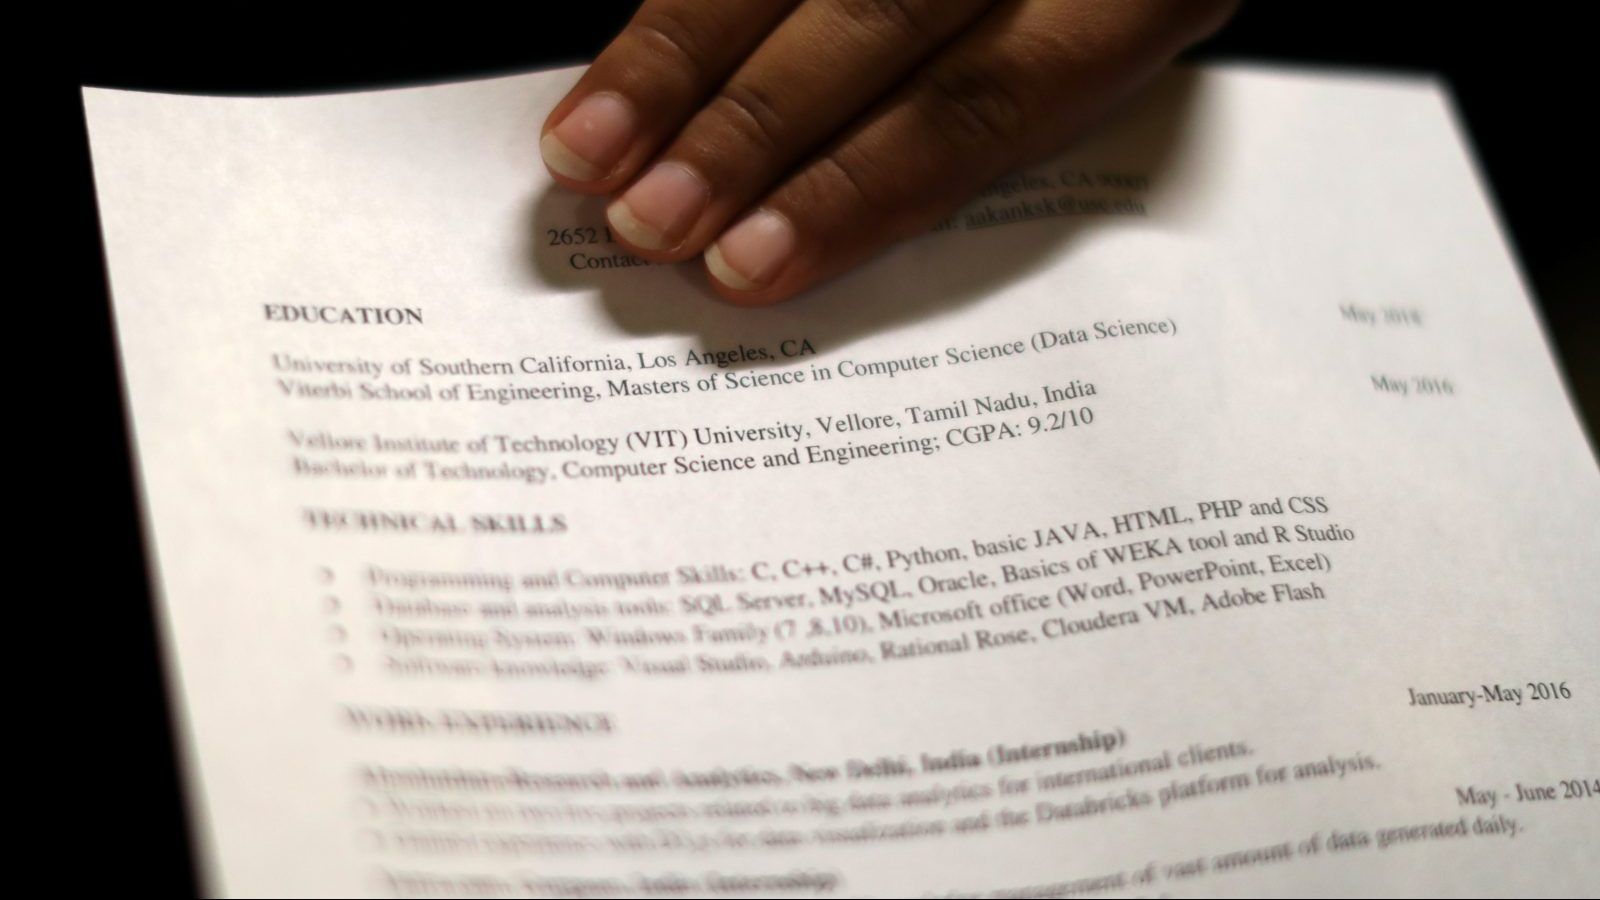 A woman holds her resume at TechFair LA, a technology job fair, in Los Angeles, California, U.S., January 26, 2017. REUTERS/Lucy Nicholson - RTSXKBN